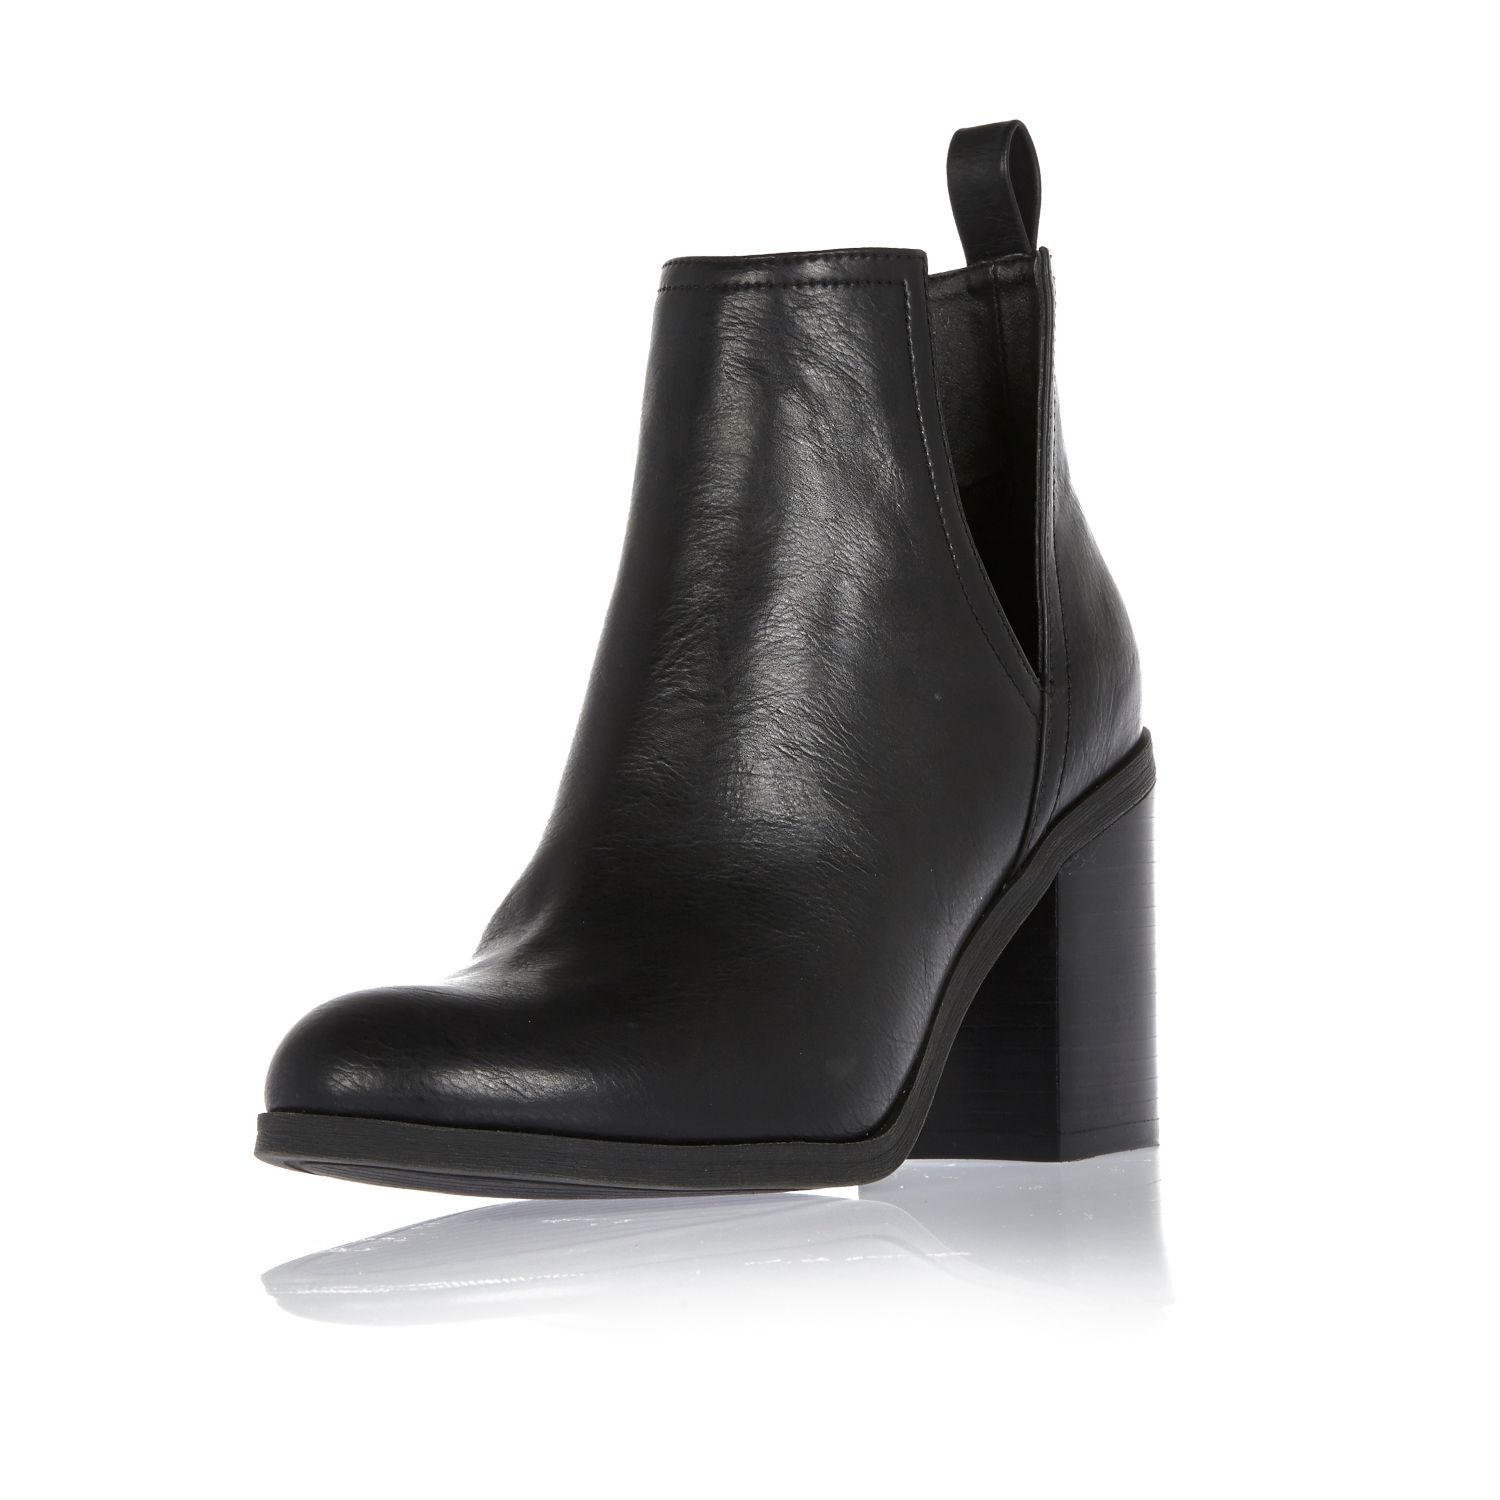 River island Black Cut-out Side Heeled Ankle Boots in Black | Lyst